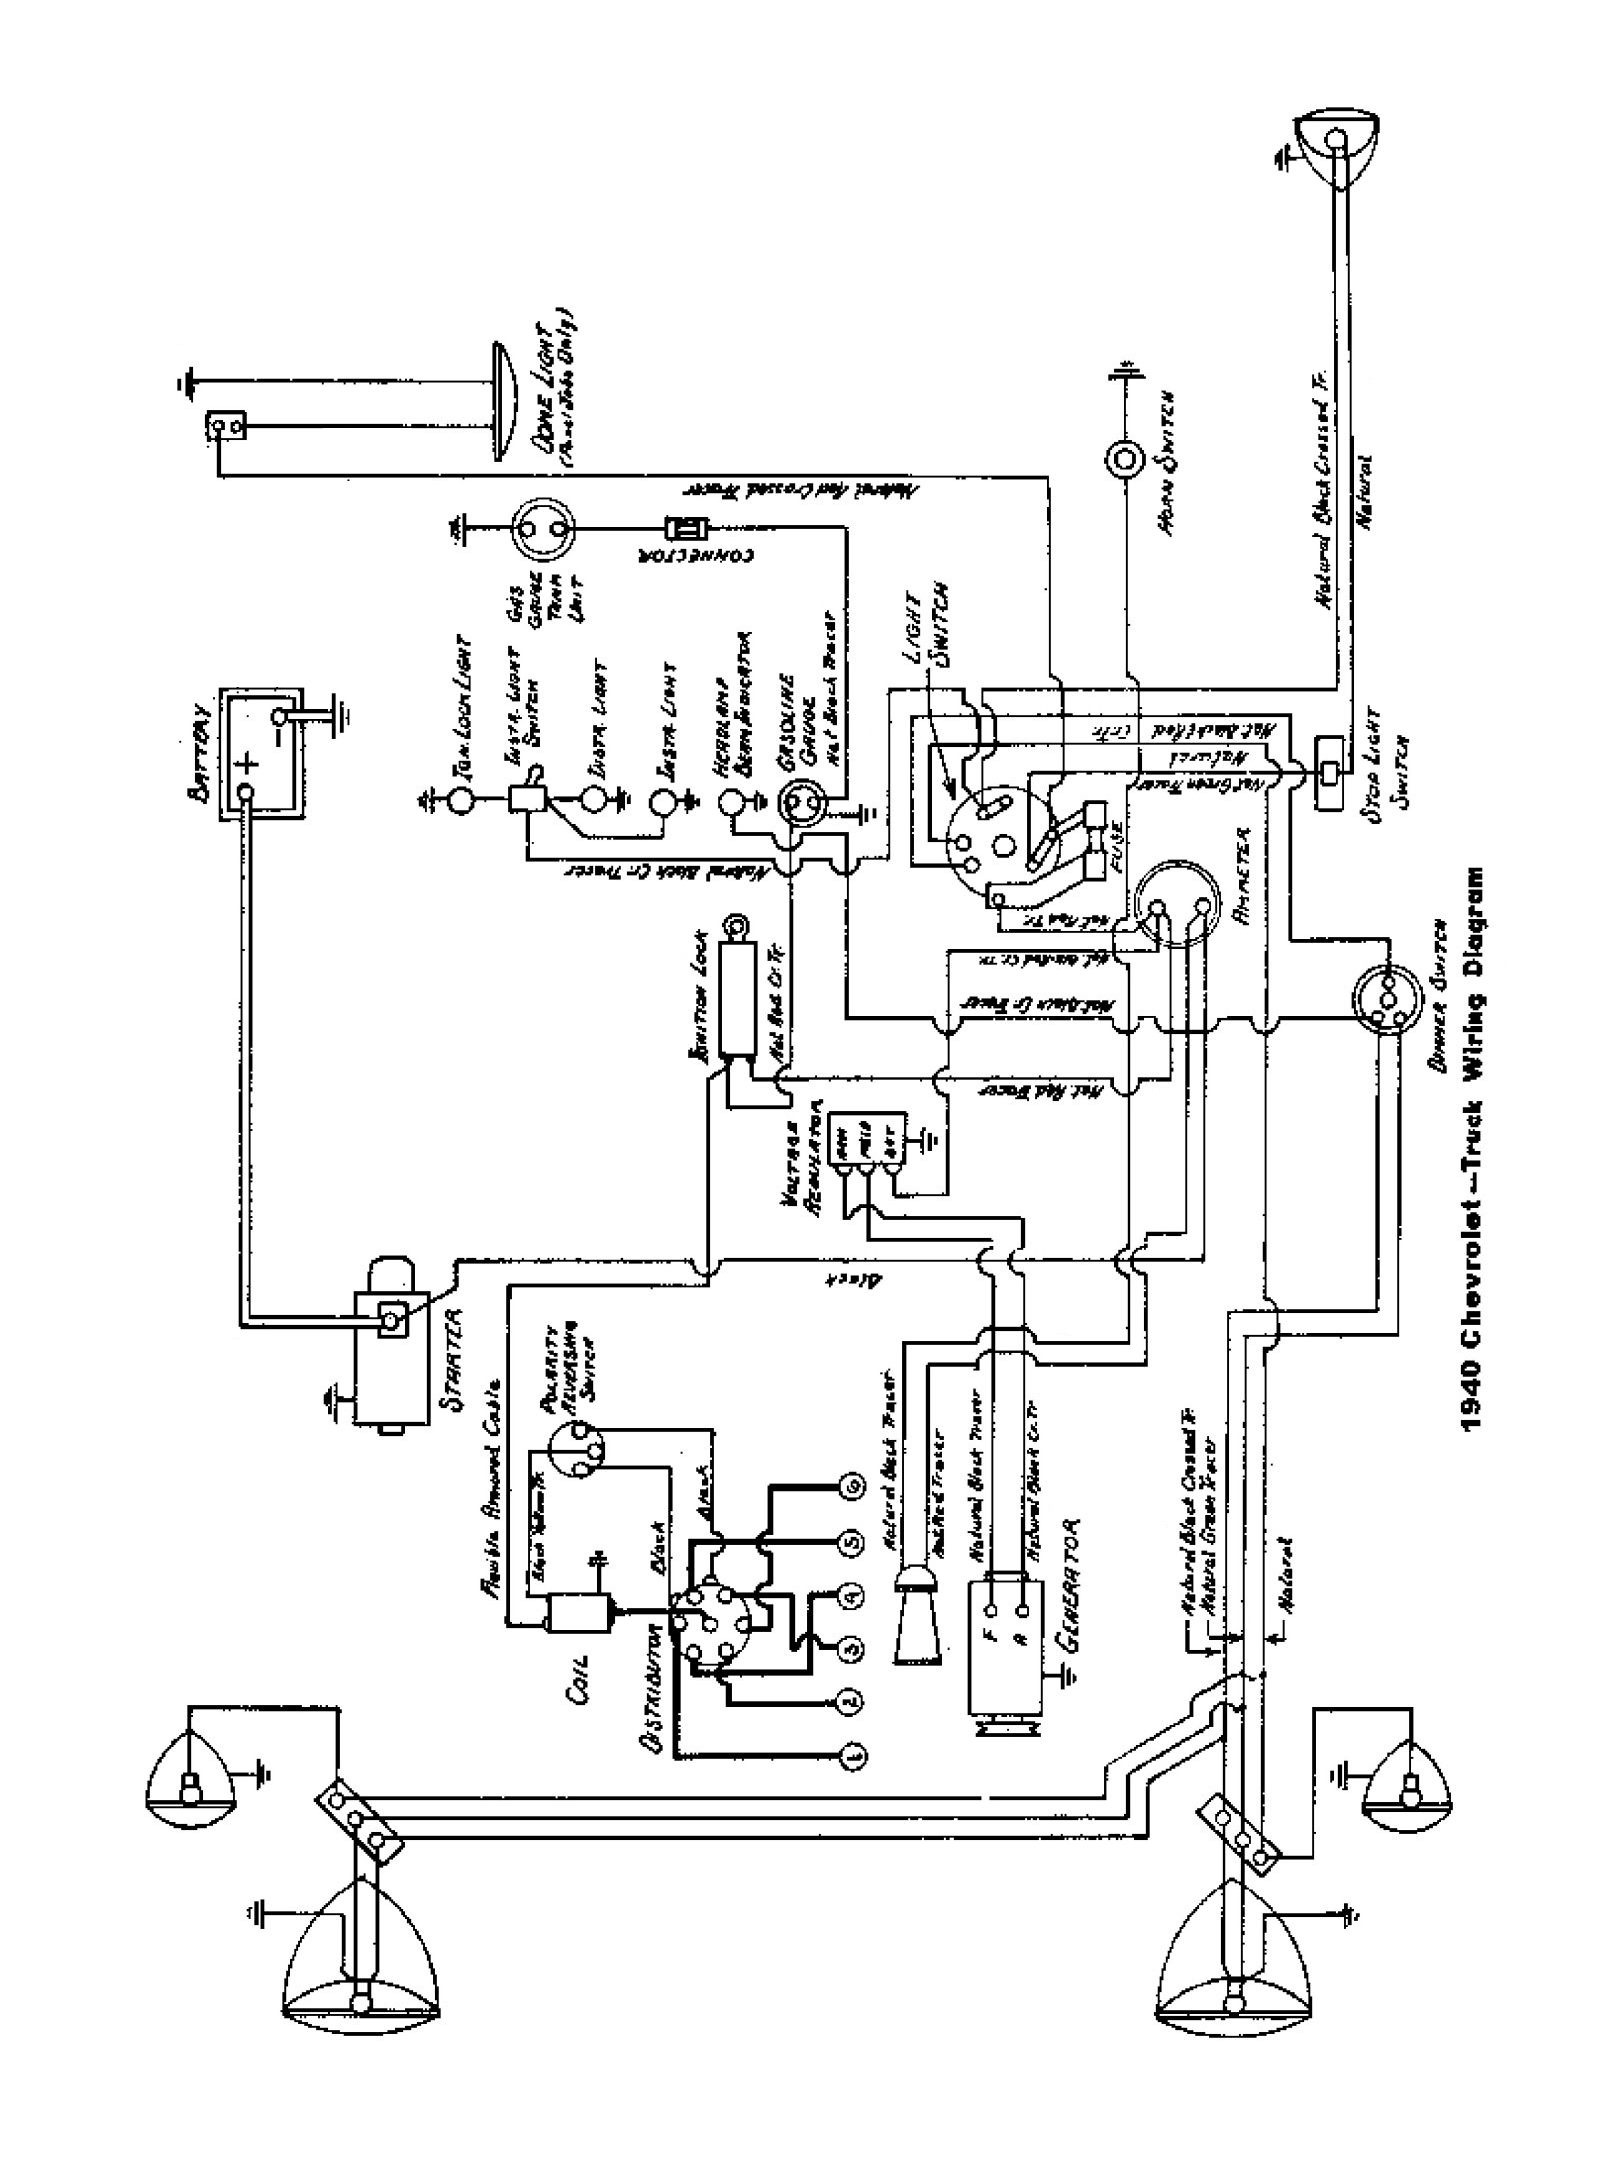 [DIAGRAM_38IS]  Chevy Wiring diagrams | Light Switch Wiring Diagram 1981 C10 |  | Old Online Chevy Manuals